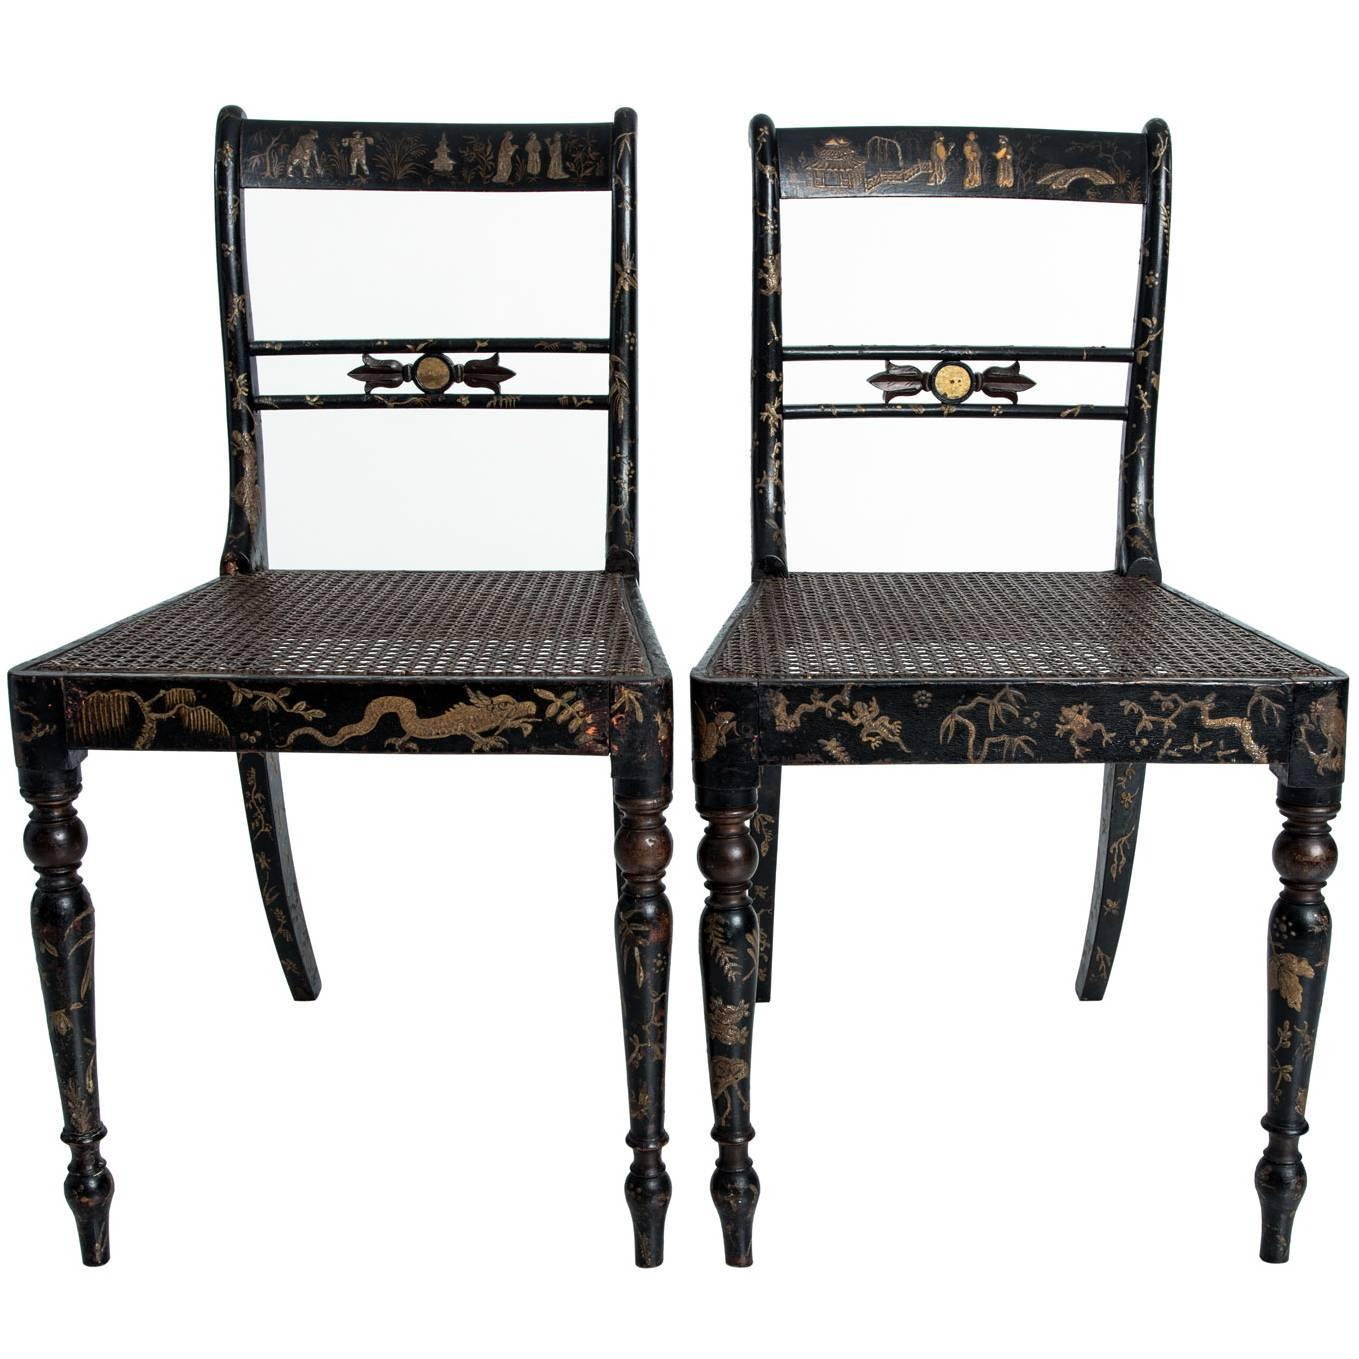 Regency Style Chairs ~ Regency style chinoiserie side chairs for sale at stdibs